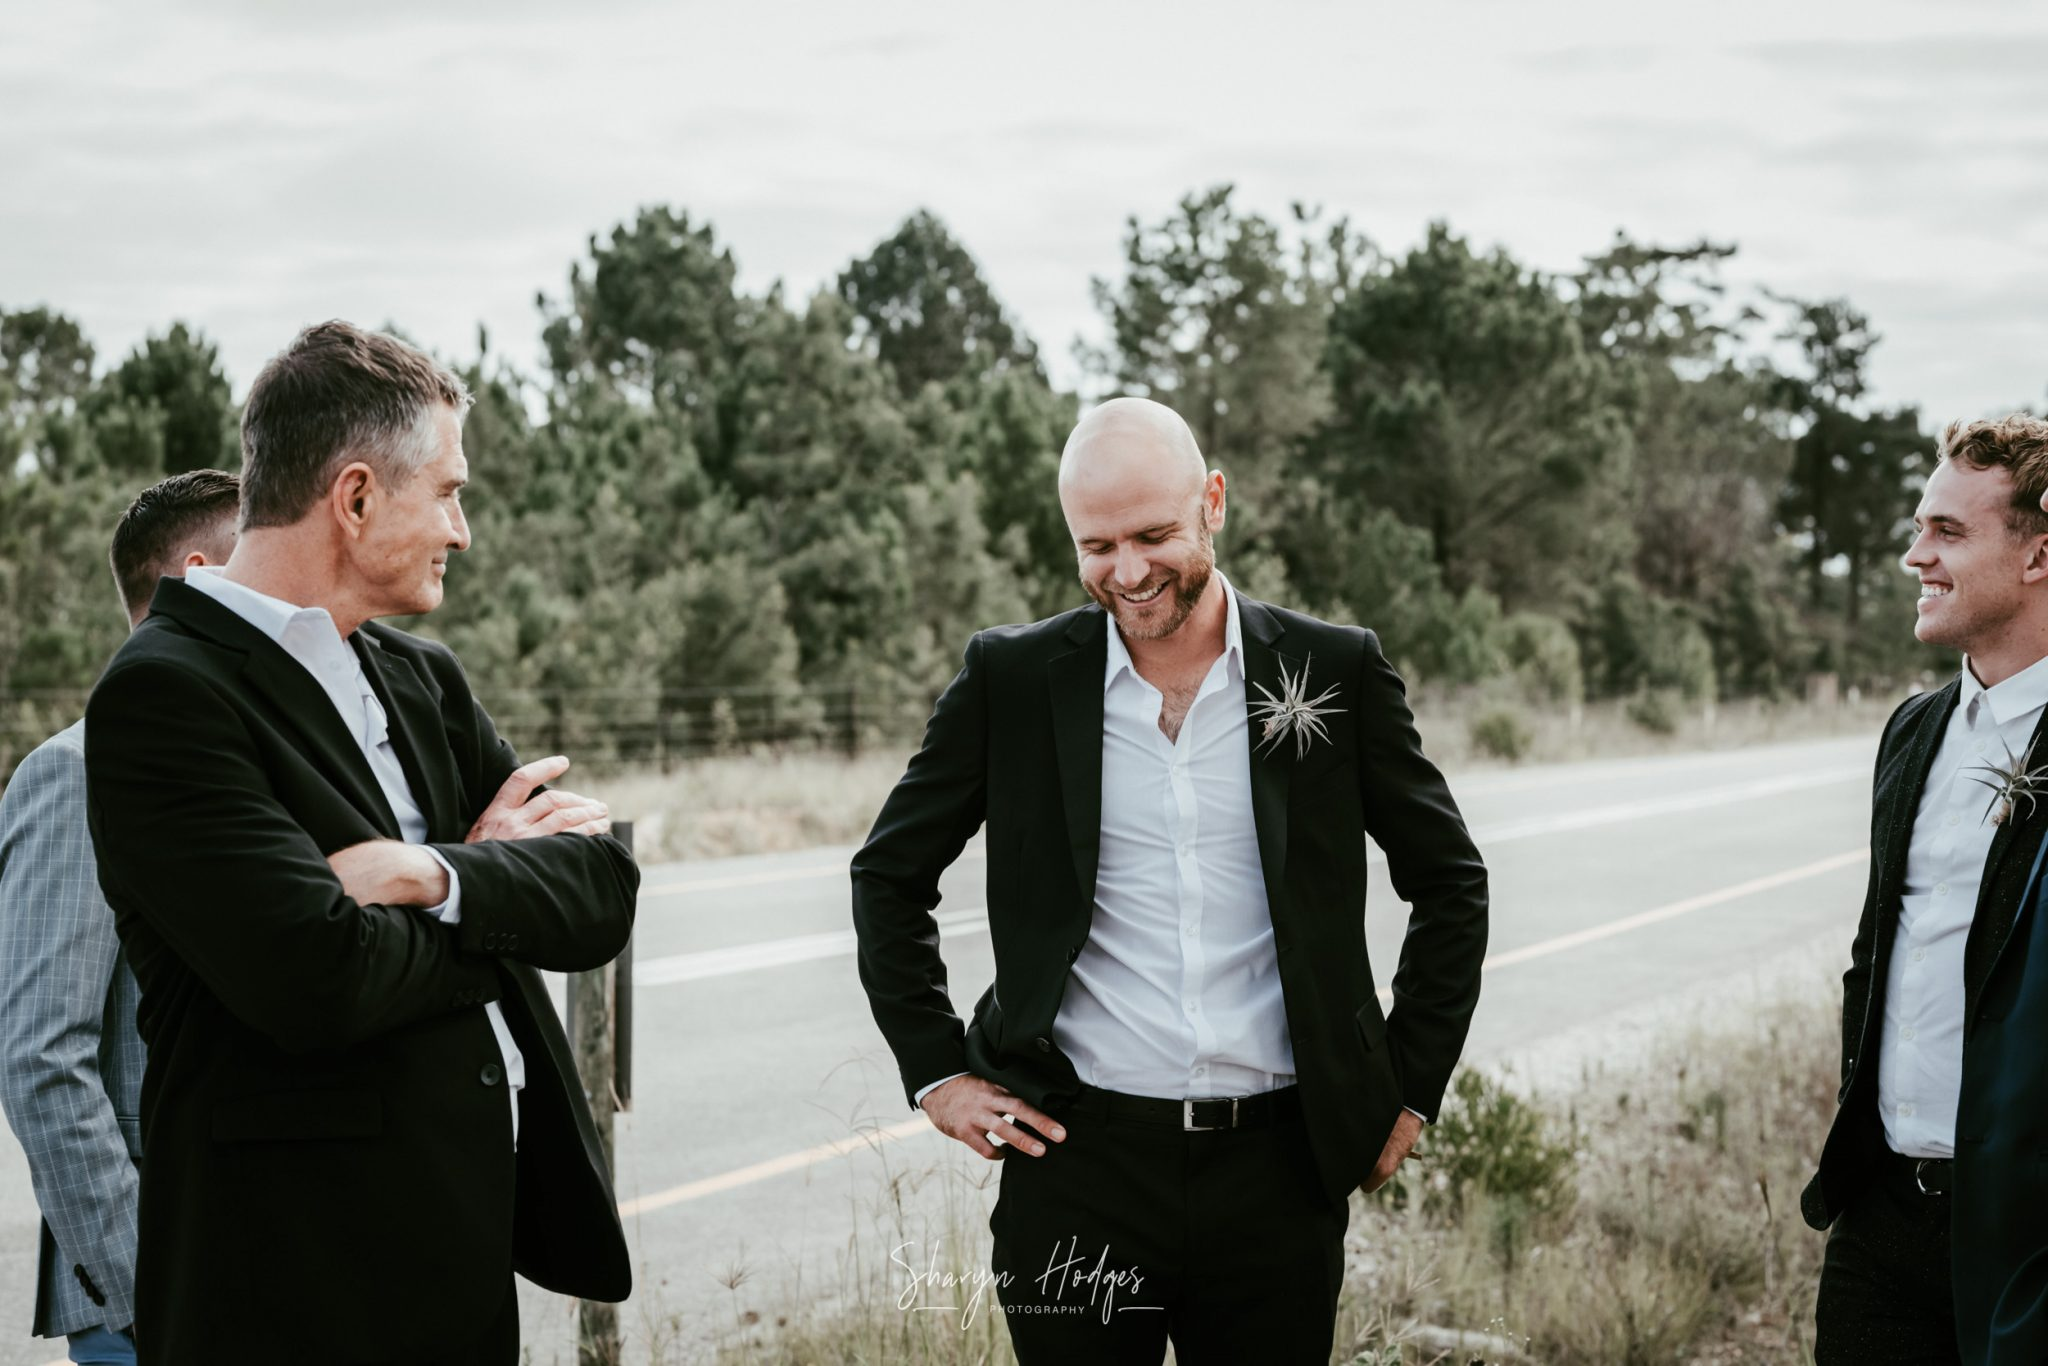 The beautiful Claire and Chad married at Dirt Therapy in Plettenberg Bay, Garden Route by Wedding Photographer Sharyn Hodges.